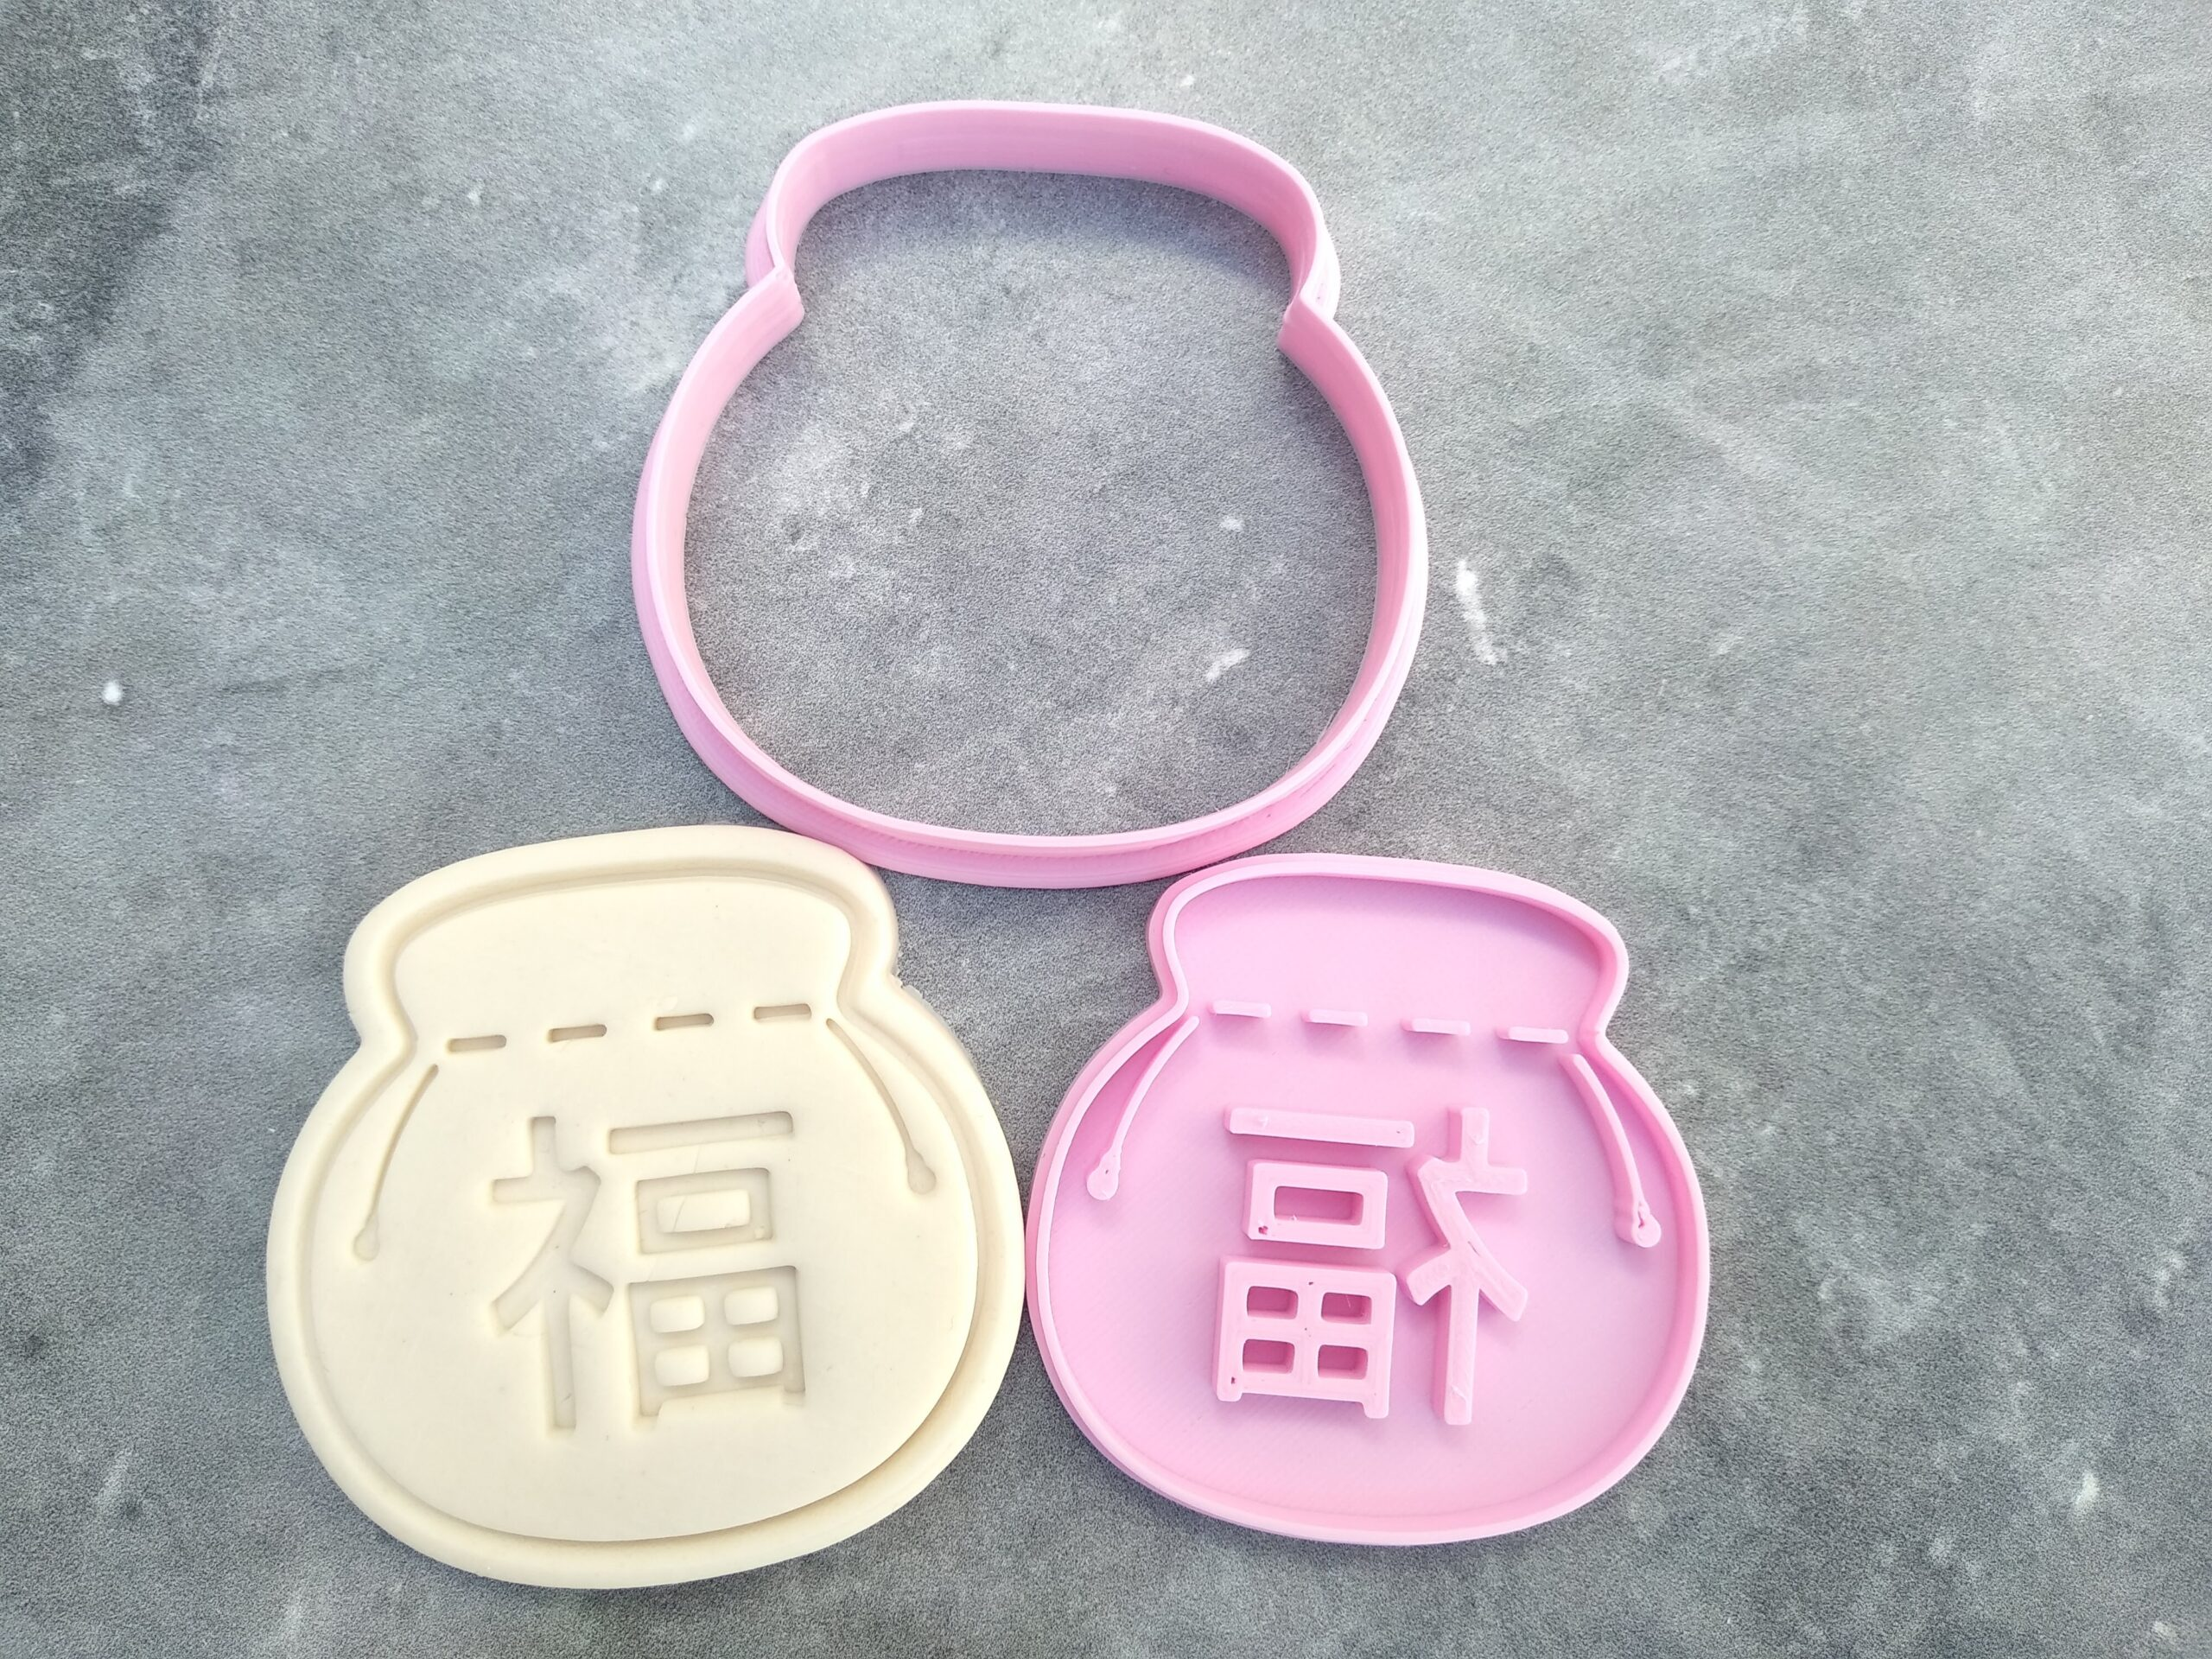 Chinese Money Bag with Good Luck Character Cookie Fondant Stamp Embosser and Cutter